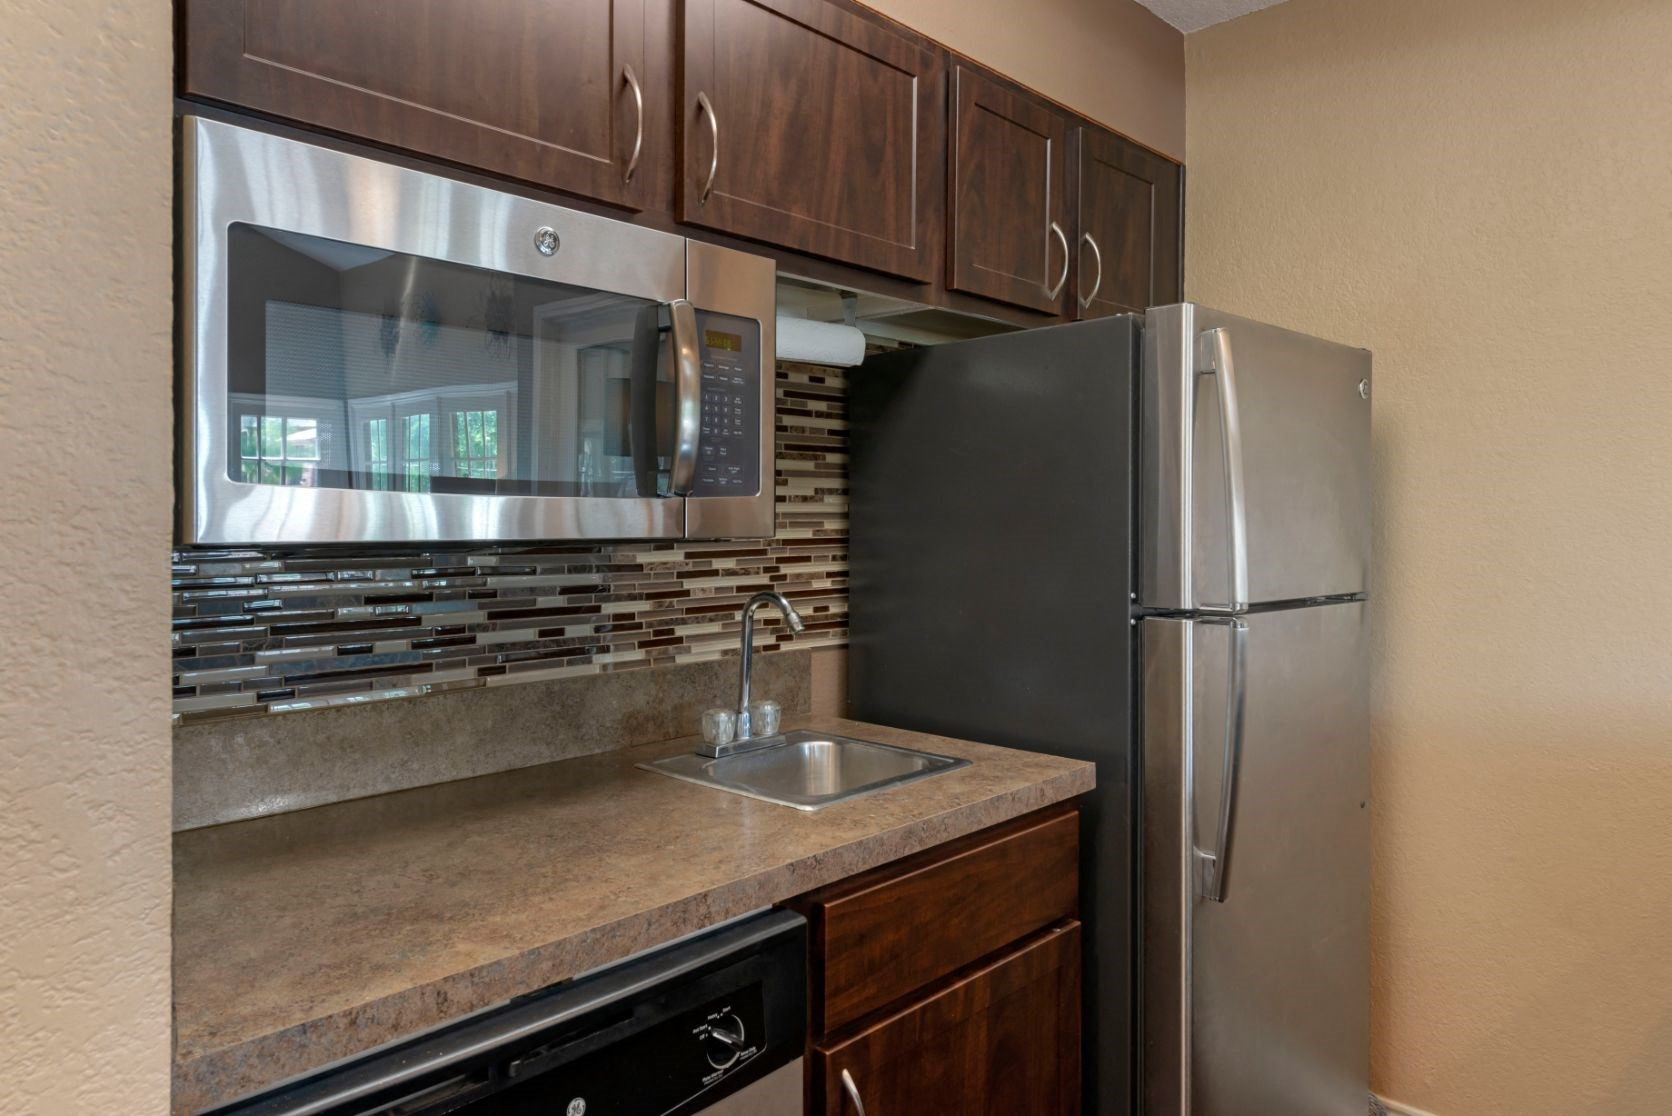 Clubhouse Kitchen with brushed nickel appliances, wooden cabinets, and microwave